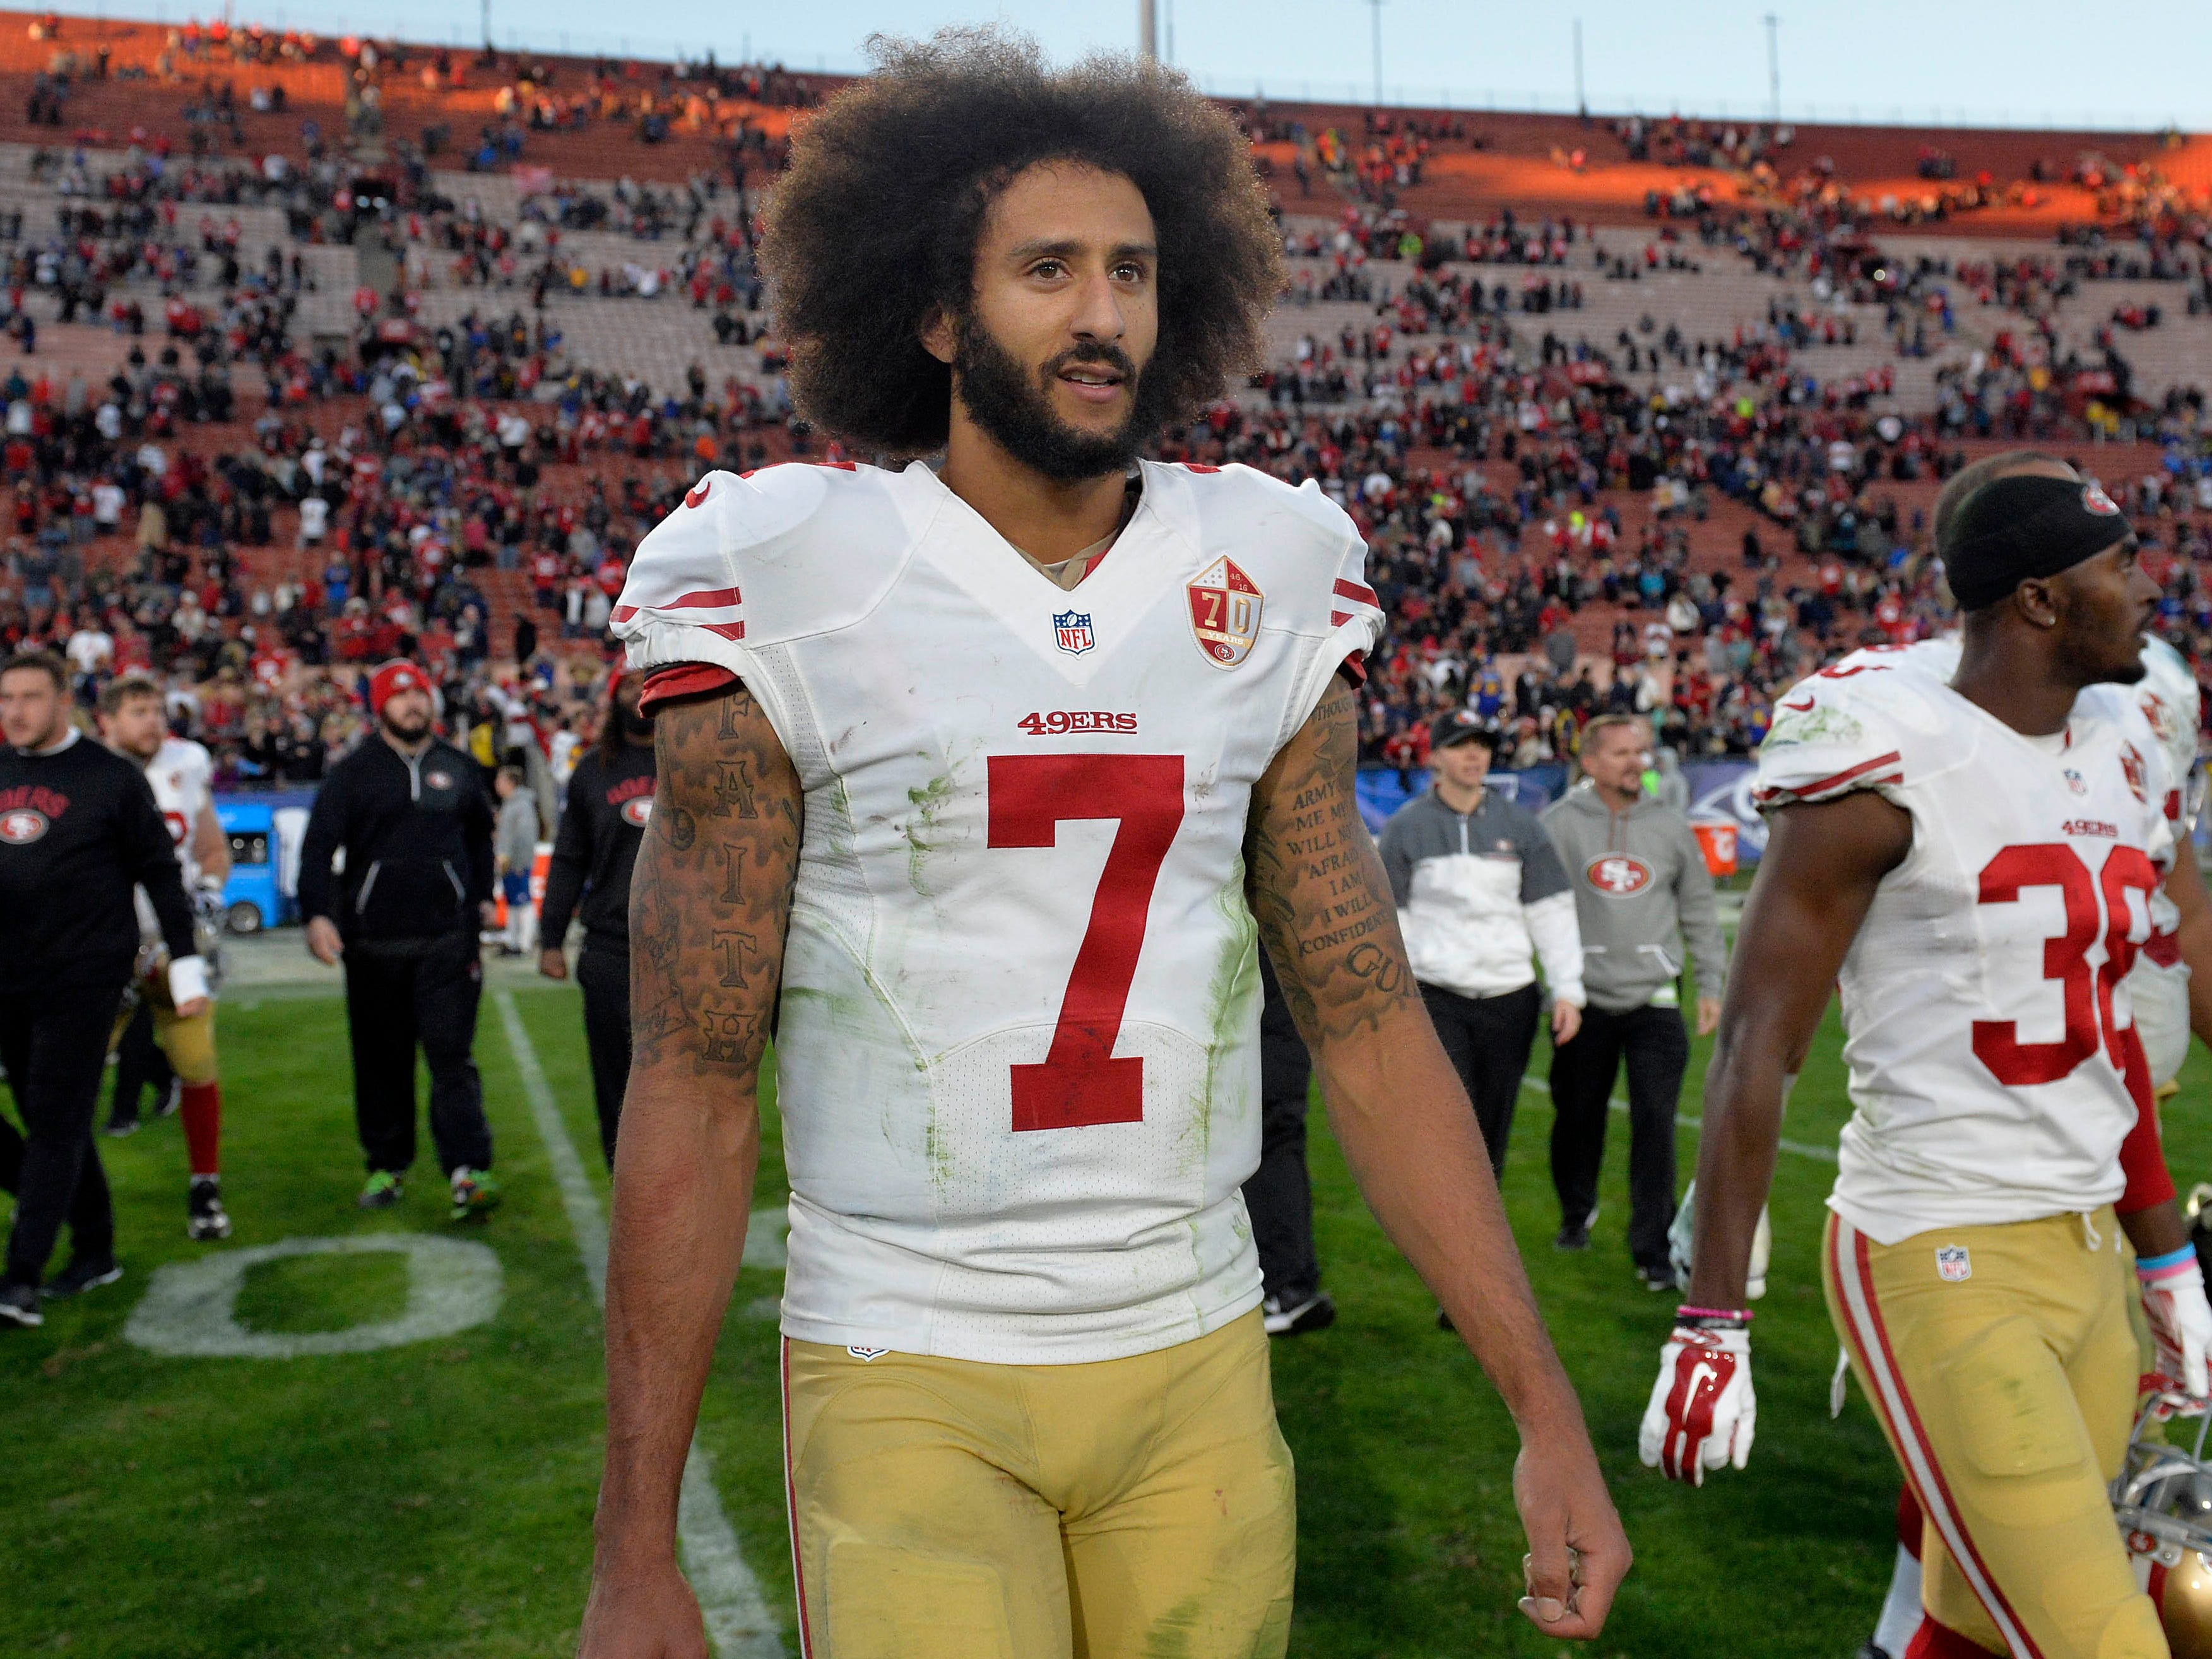 Nike nearly cut ties with Colin Kaepernick months before 'Just Do It' campaign, per report